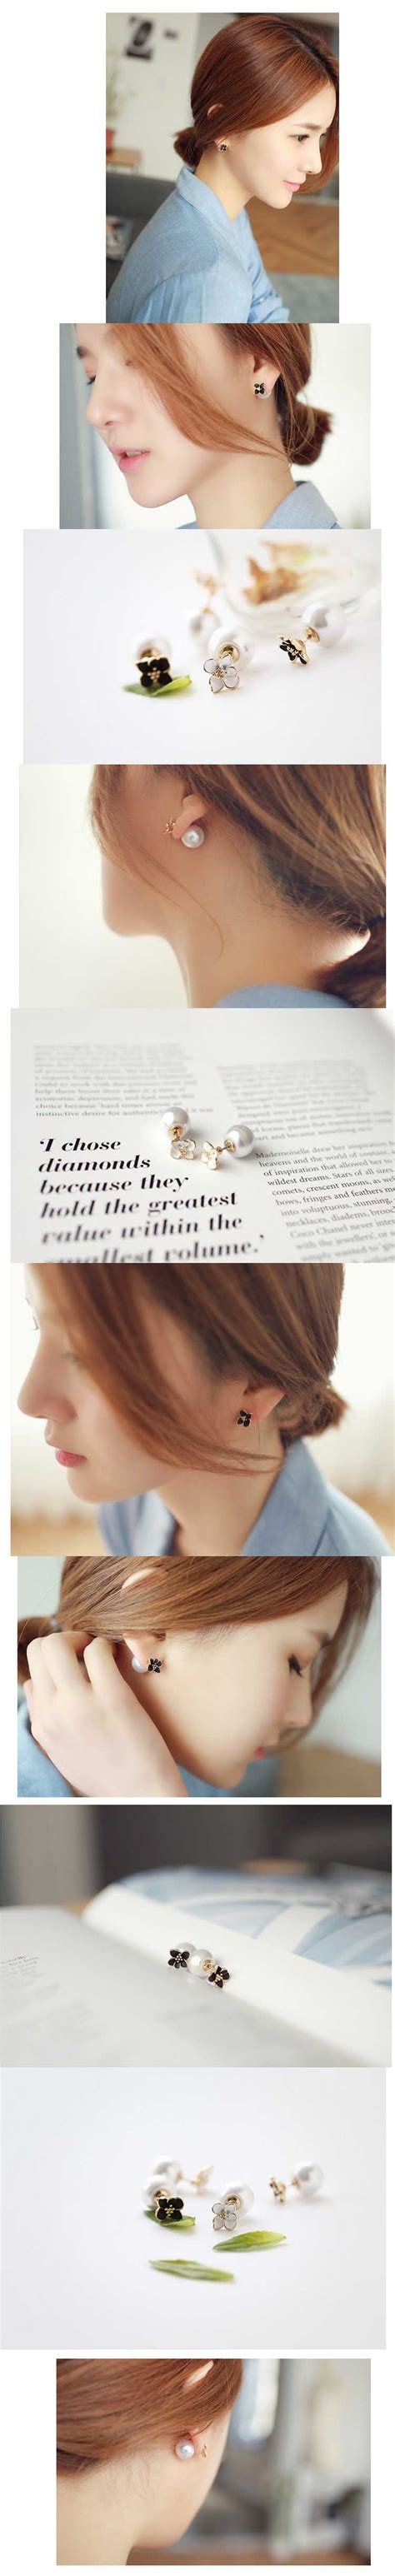 Anting Korea 25 Anting Wanita Korea Tt0442 Moro Fashion